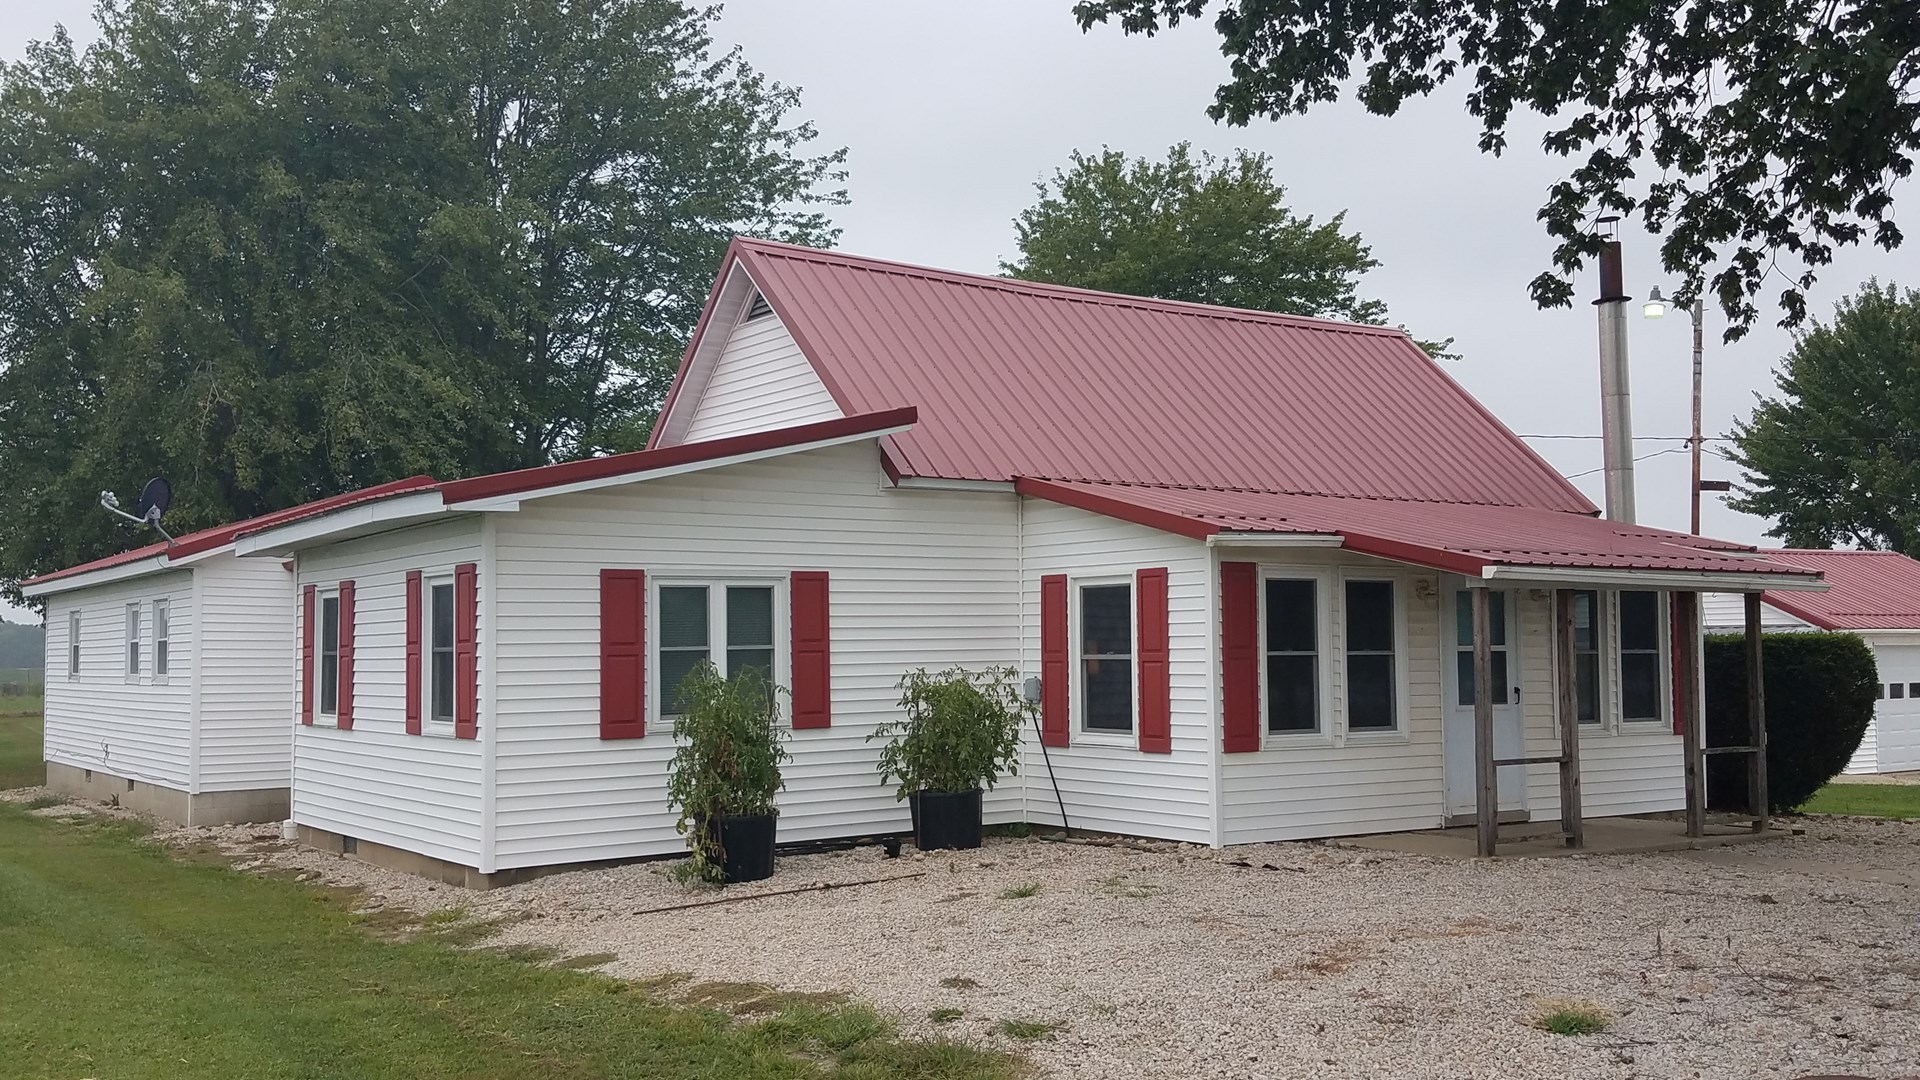 3 Bedroom, 1 Bath Country Home